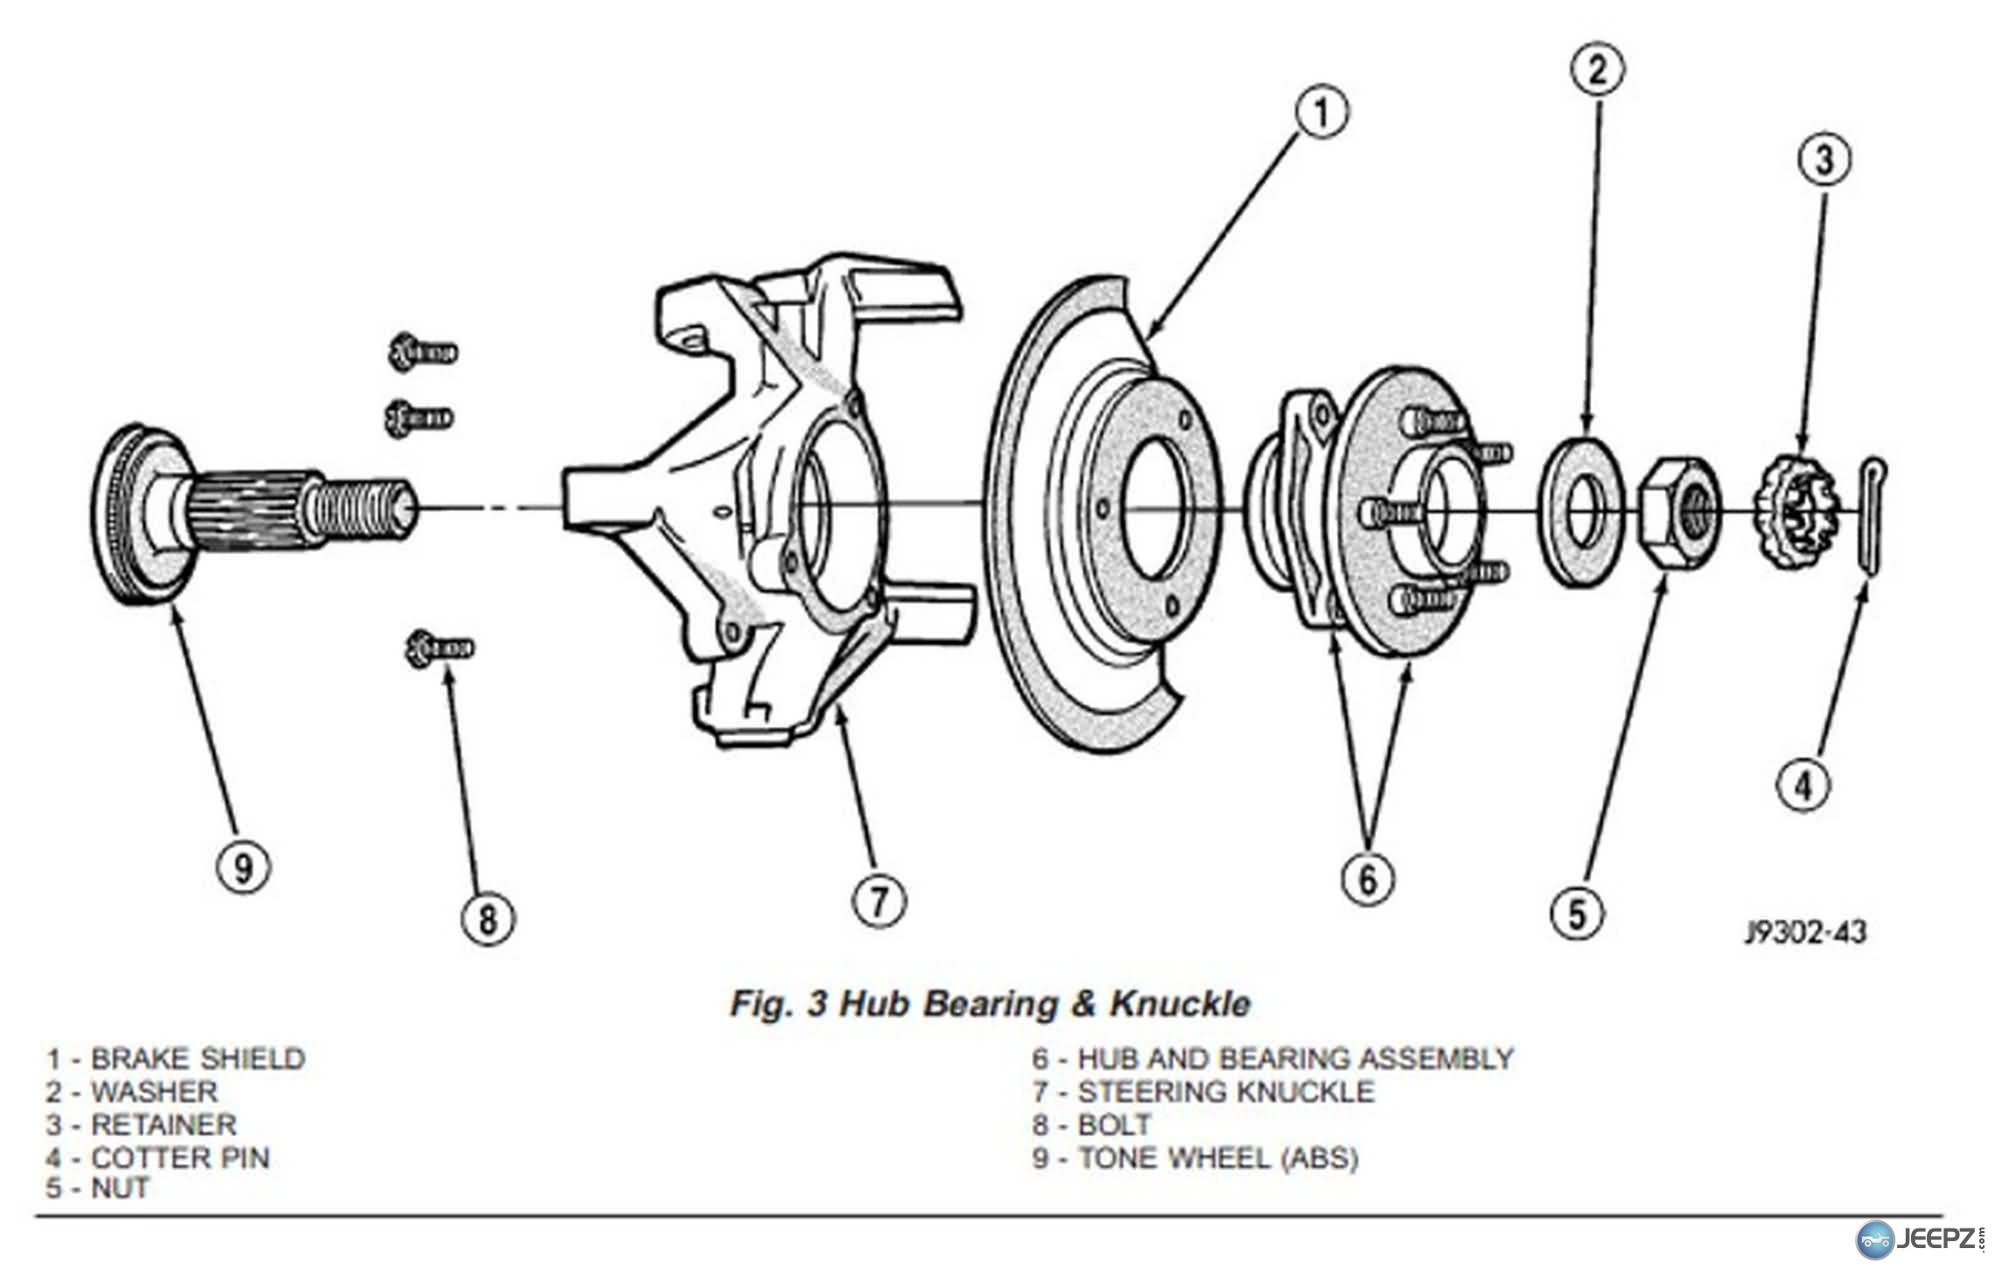 Rear Wheel Bearing Diagram on Jeep Grand Cherokee Crankshaft Position Sensor Location